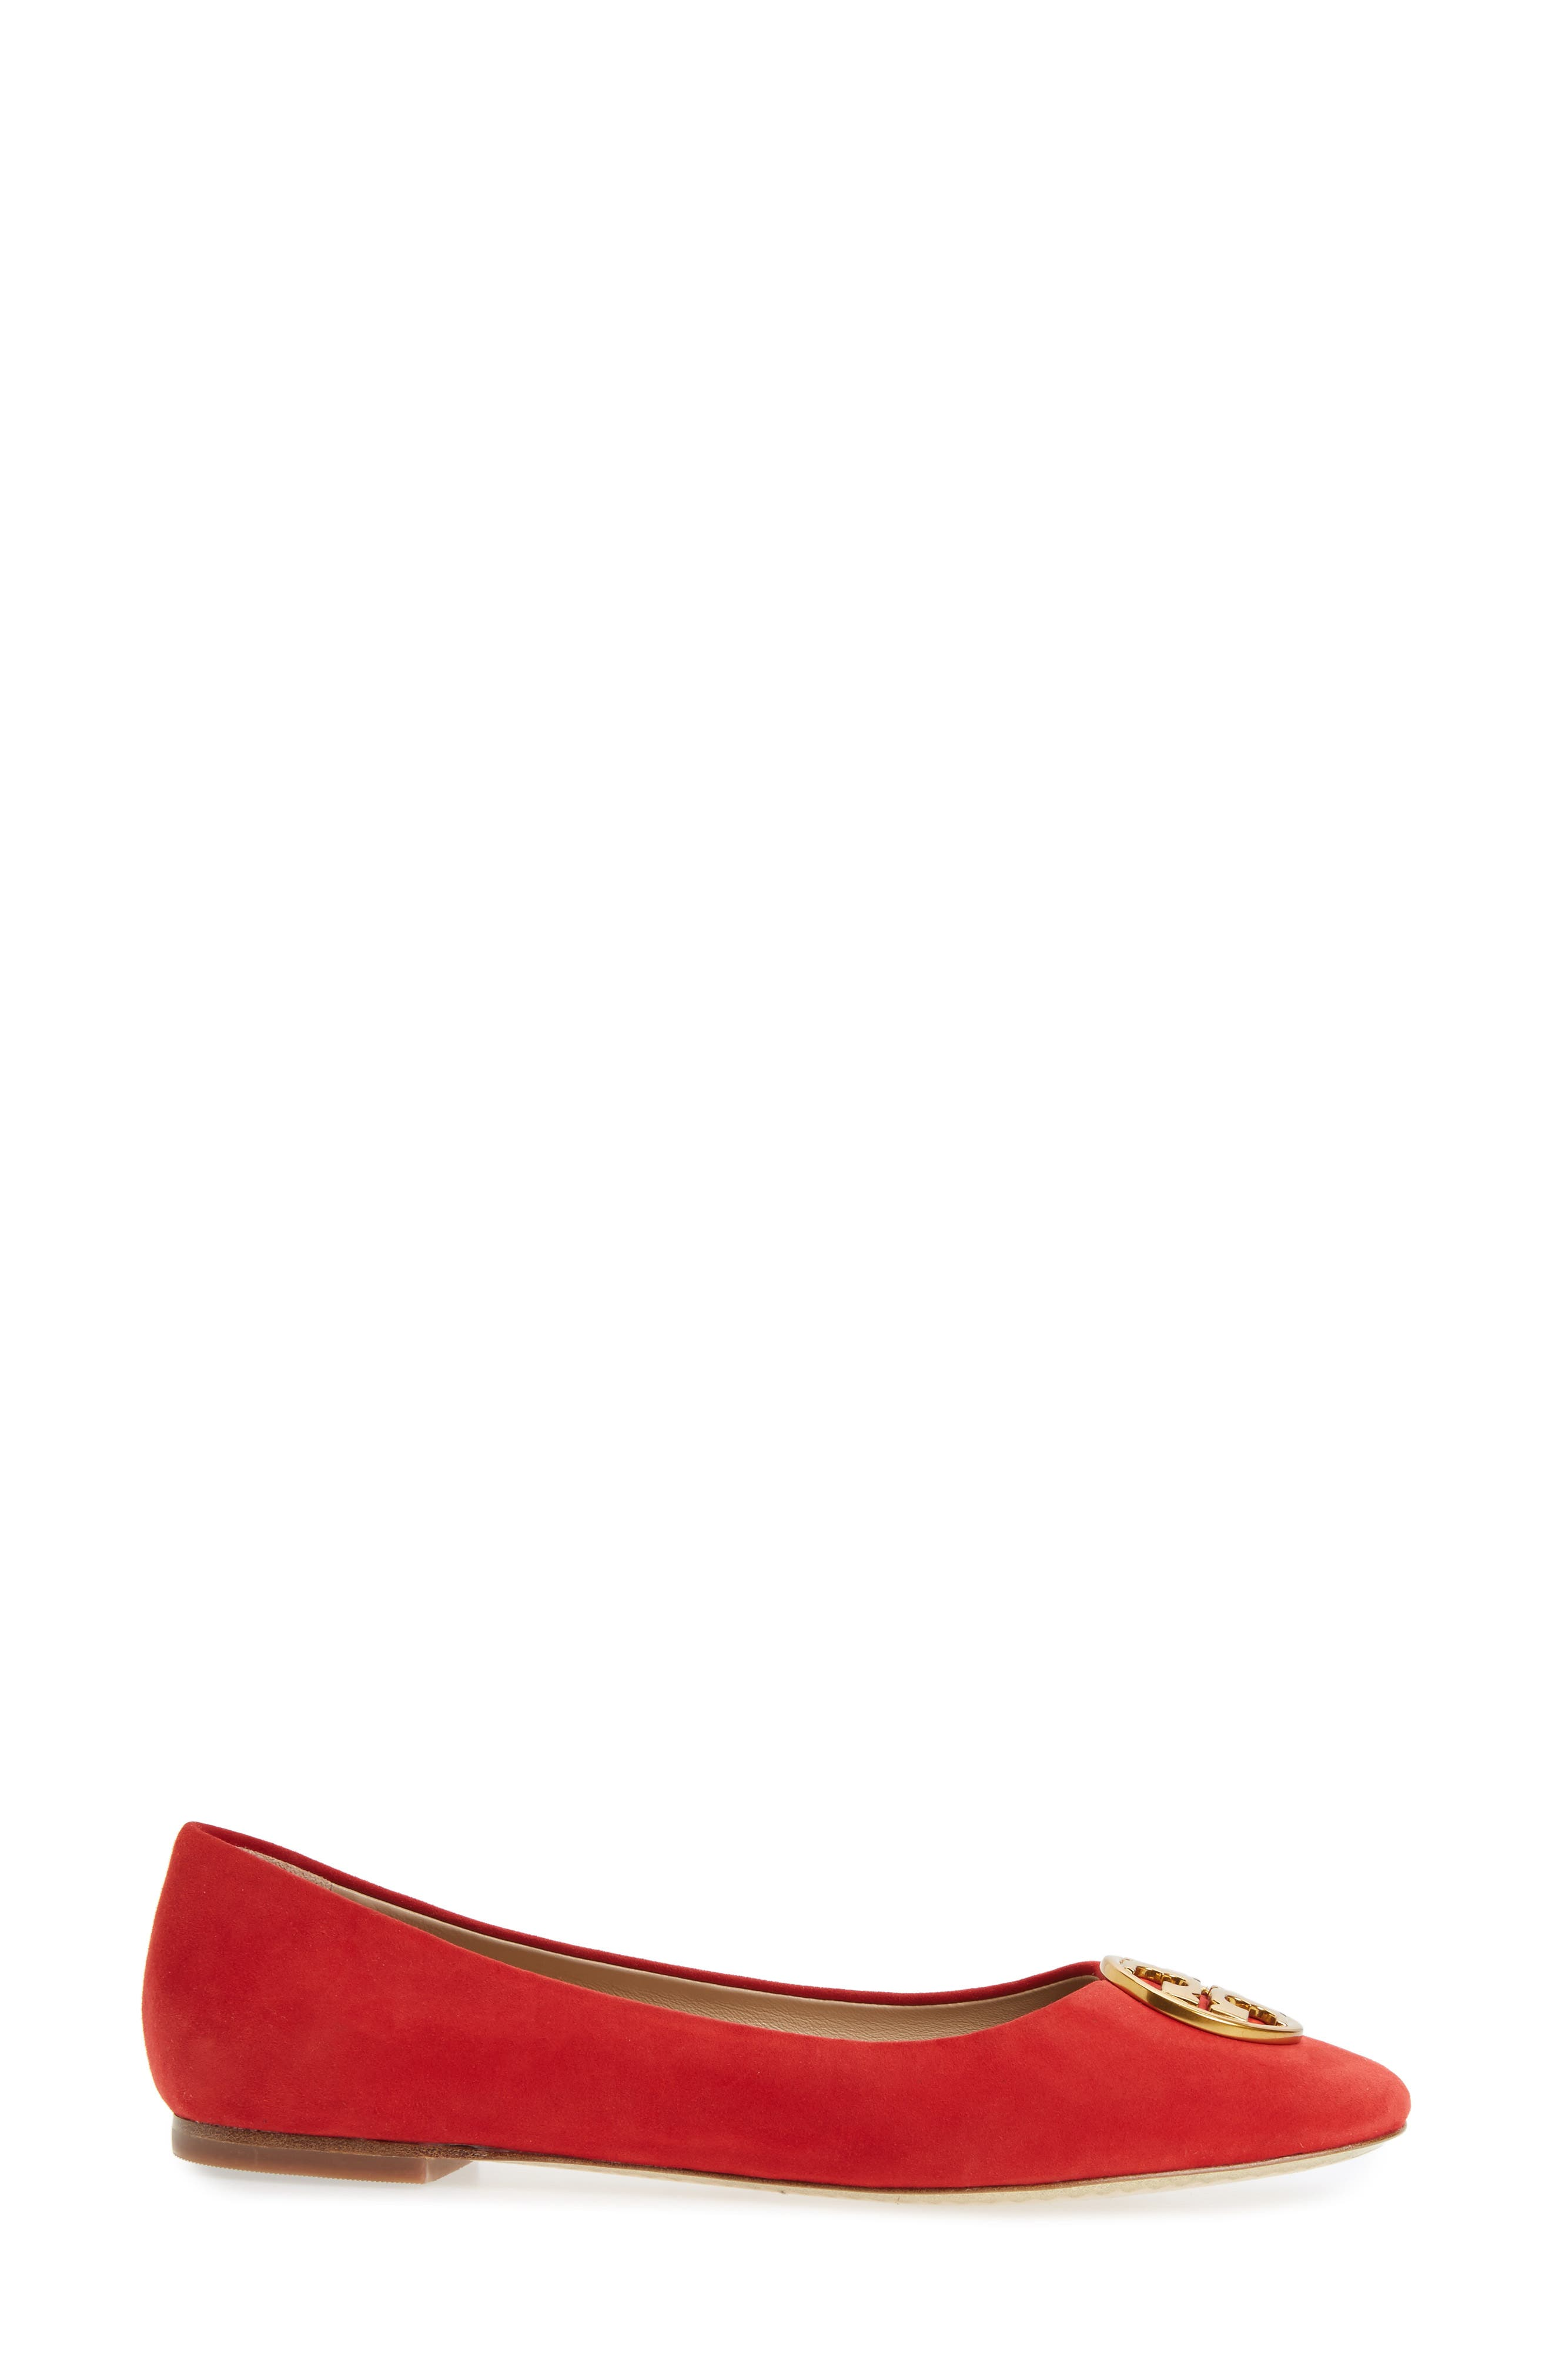 Chelsea Ballet Flat,                             Alternate thumbnail 3, color,                             Liberty Red